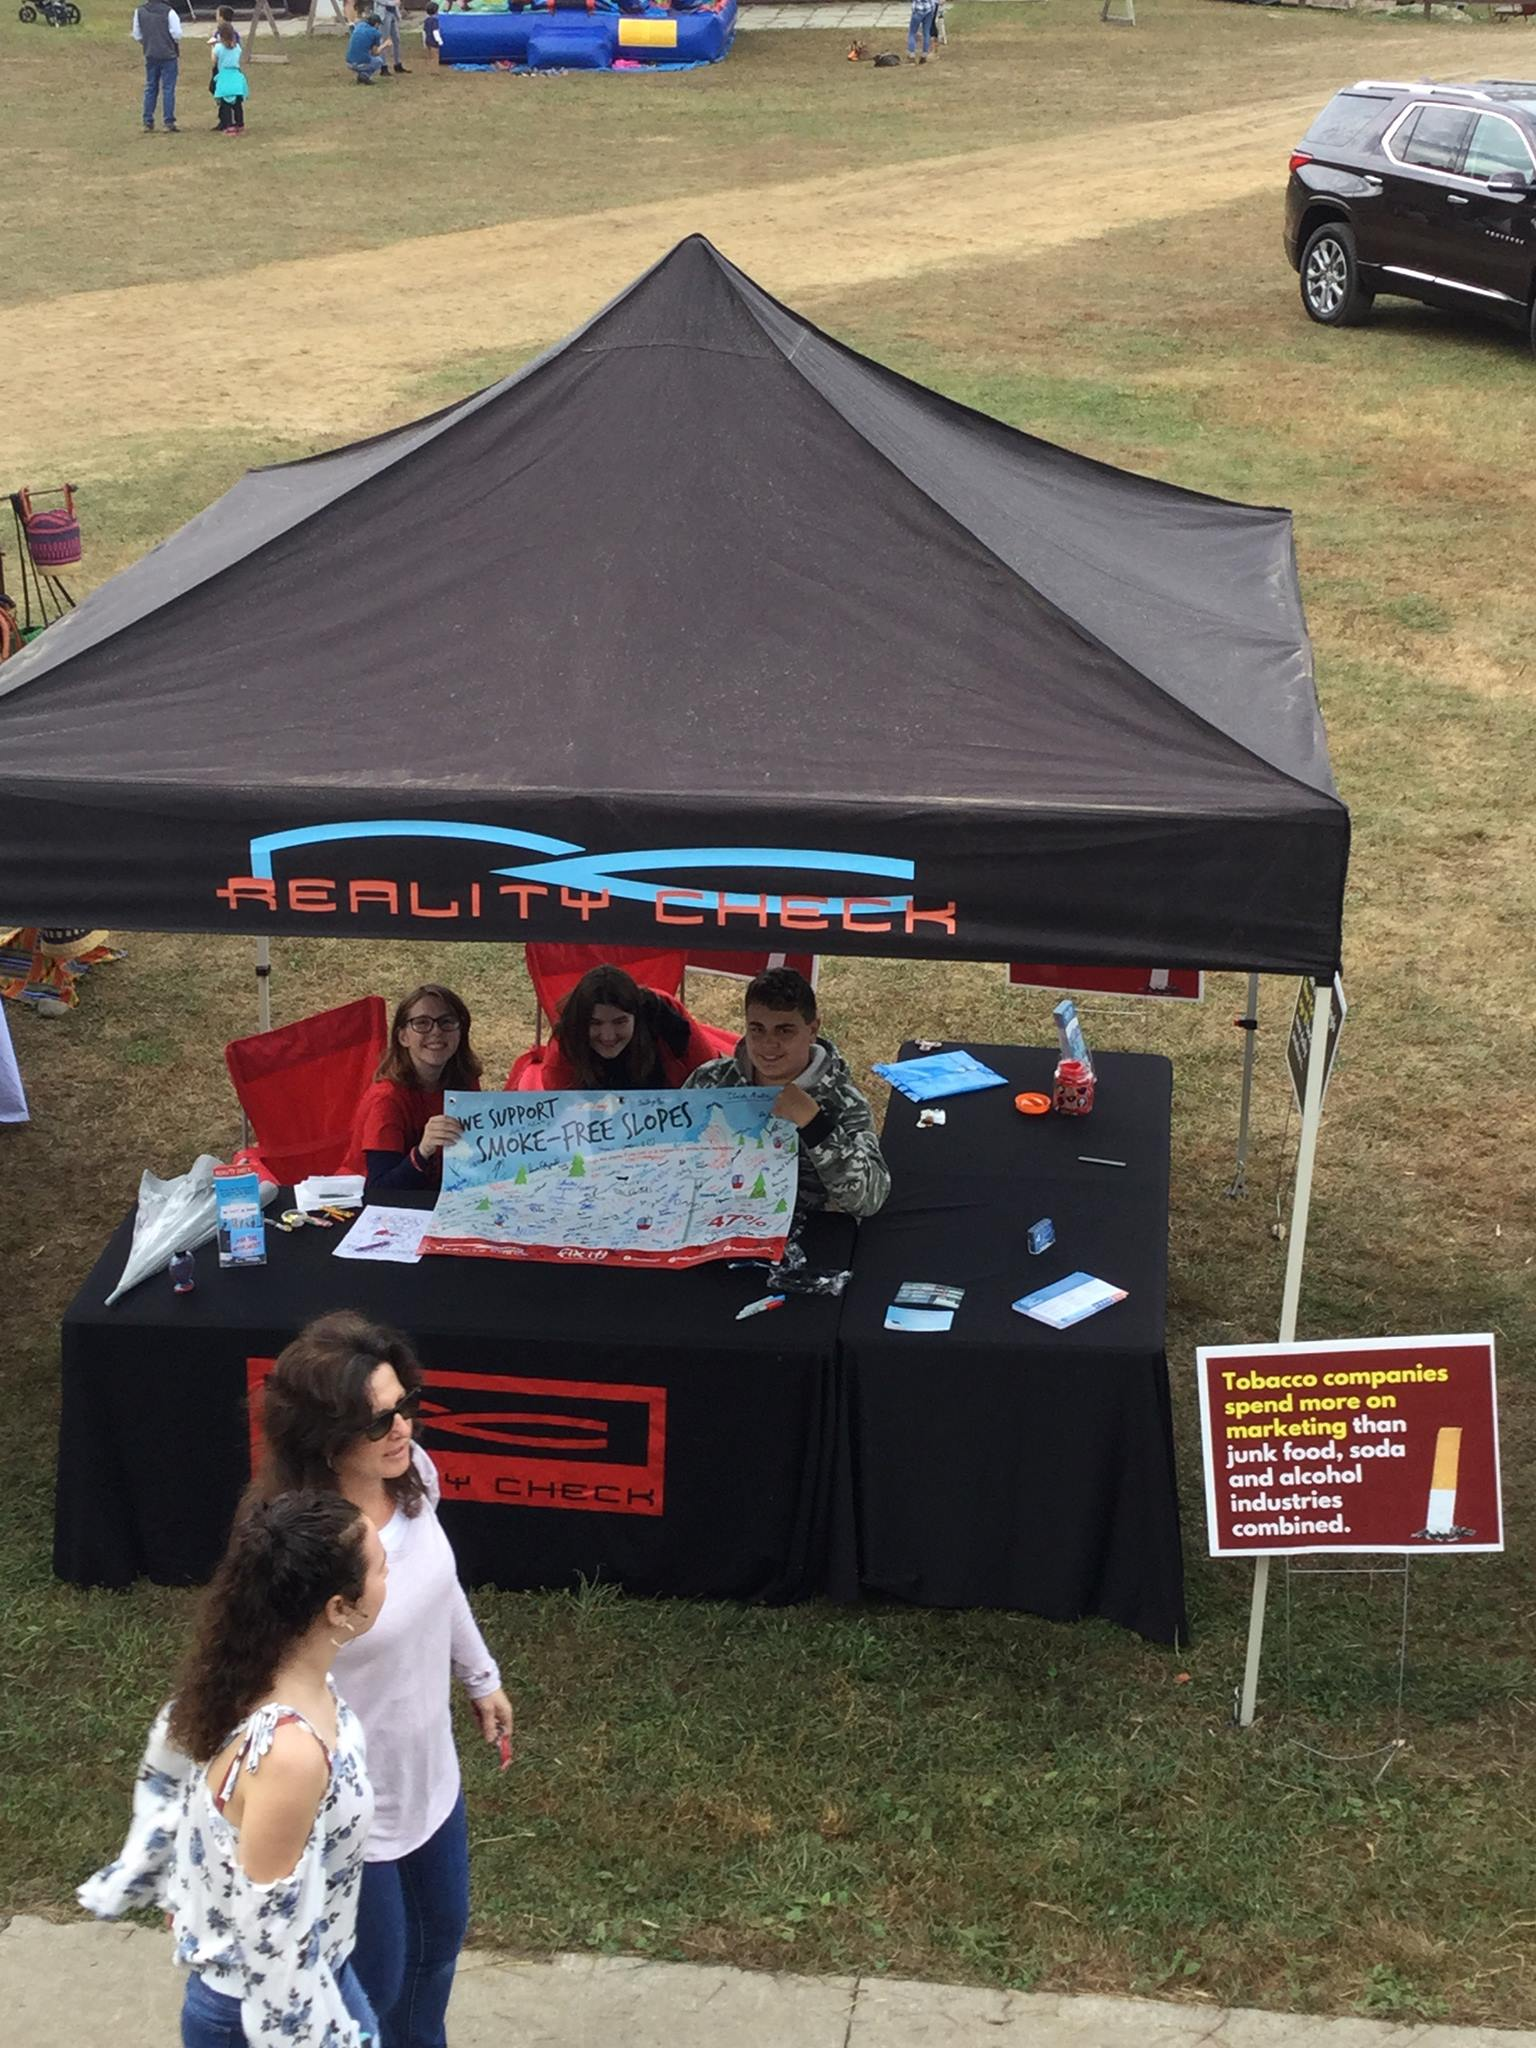 Saratoga, Washington, and Warren RC Youth - Reality Check youth from Saratoga, Warren and Washington counties educated community members about our program at the West Mountain Fall Festival. Students collected signatures of support for the mountain to adopt a tobacco-free outdoor policy so everyone can breathe clean air.